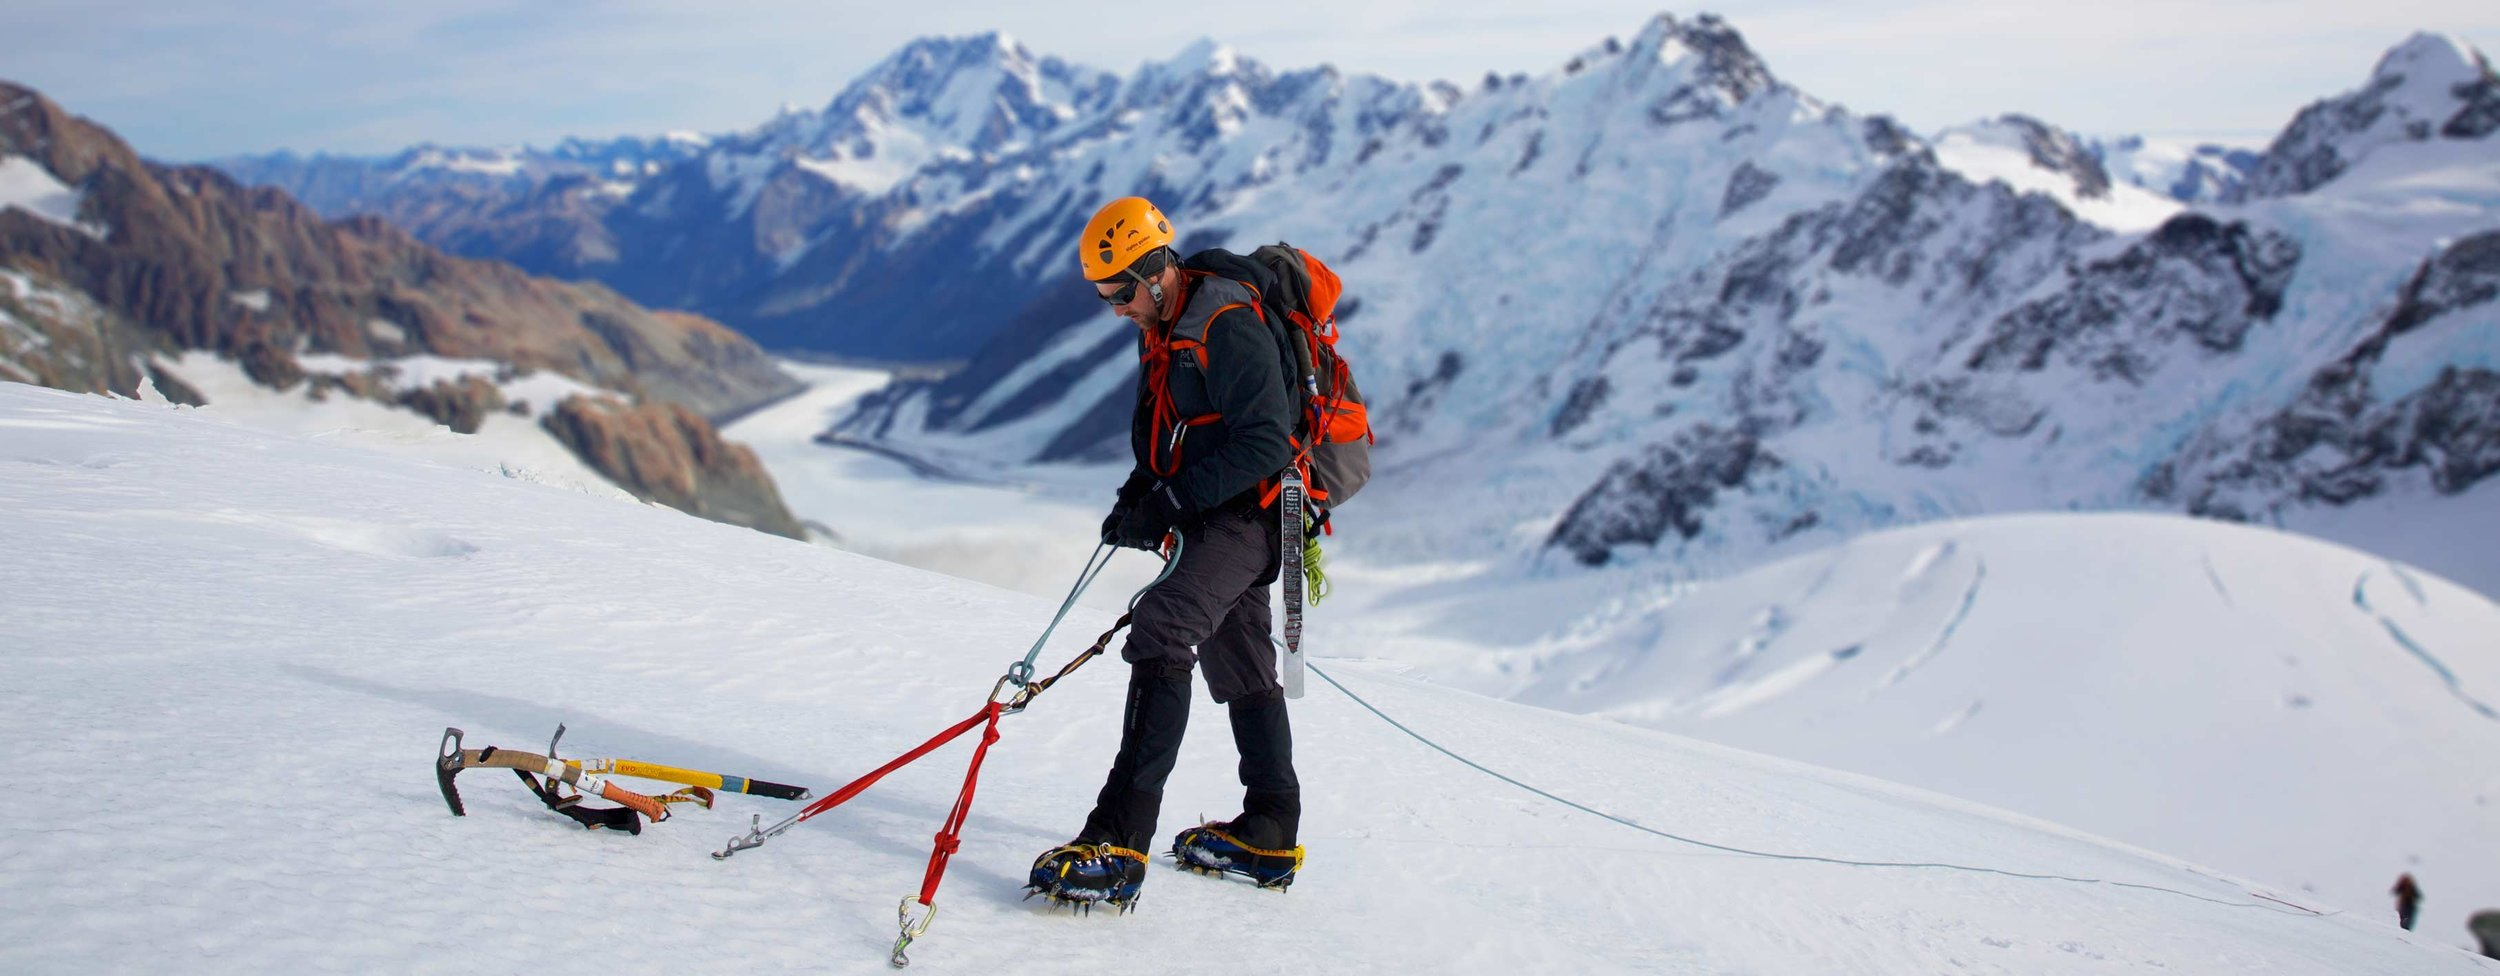 Climbing Instruction Courses   Learn the ropes on snow, ice, and rock